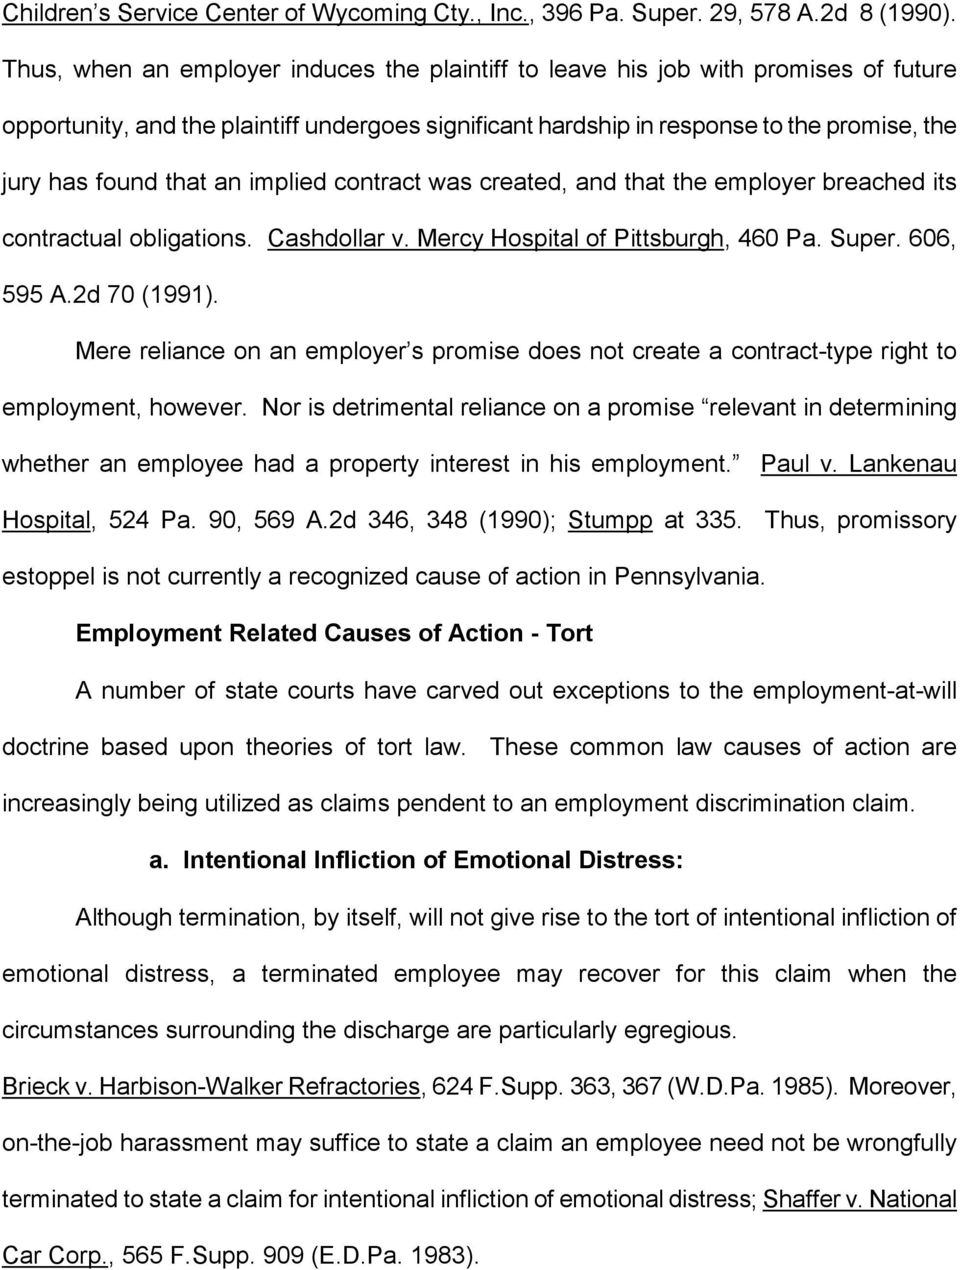 an implied contract was created, and that the employer breached its contractual obligations. Cashdollar v. Mercy Hospital of Pittsburgh, 460 Pa. Super. 606, 595 A.2d 70 (1991).